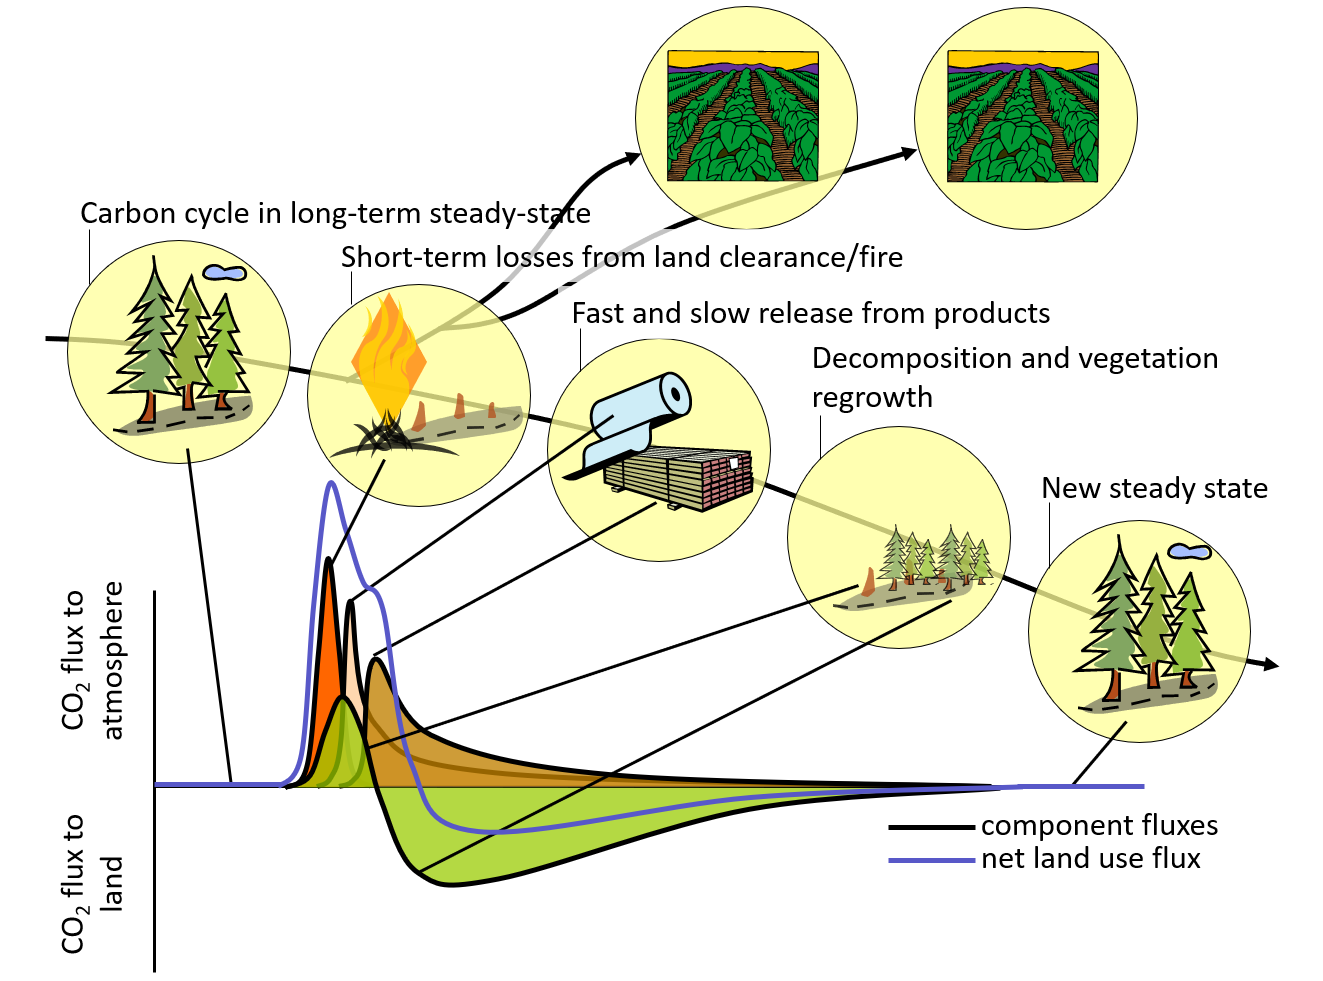 Theoretical response of land-atmosphere carbon exchange after a managed (human) disturbance